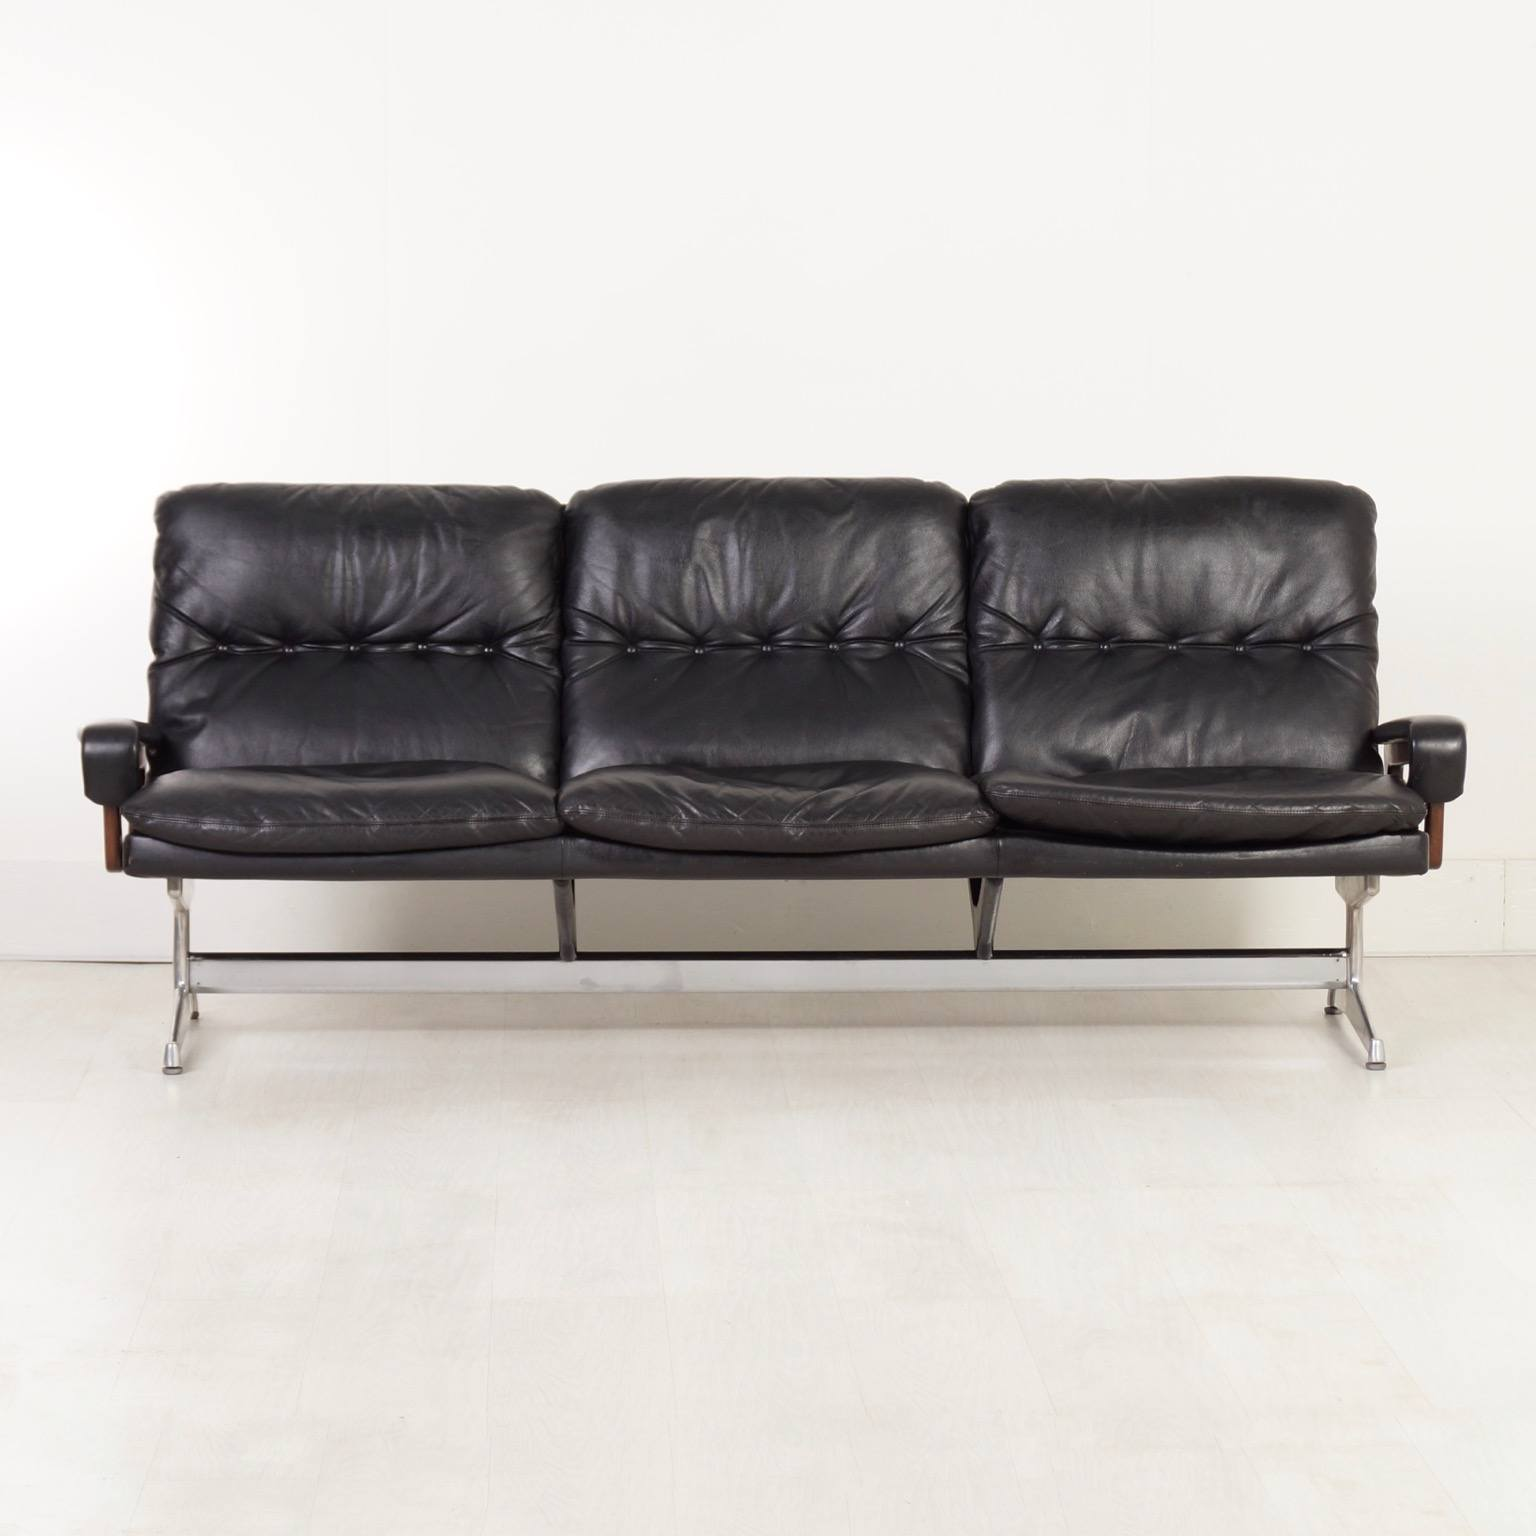 andre sofa l shaped leather malaysia king by vandenbeuck for strassle 1965